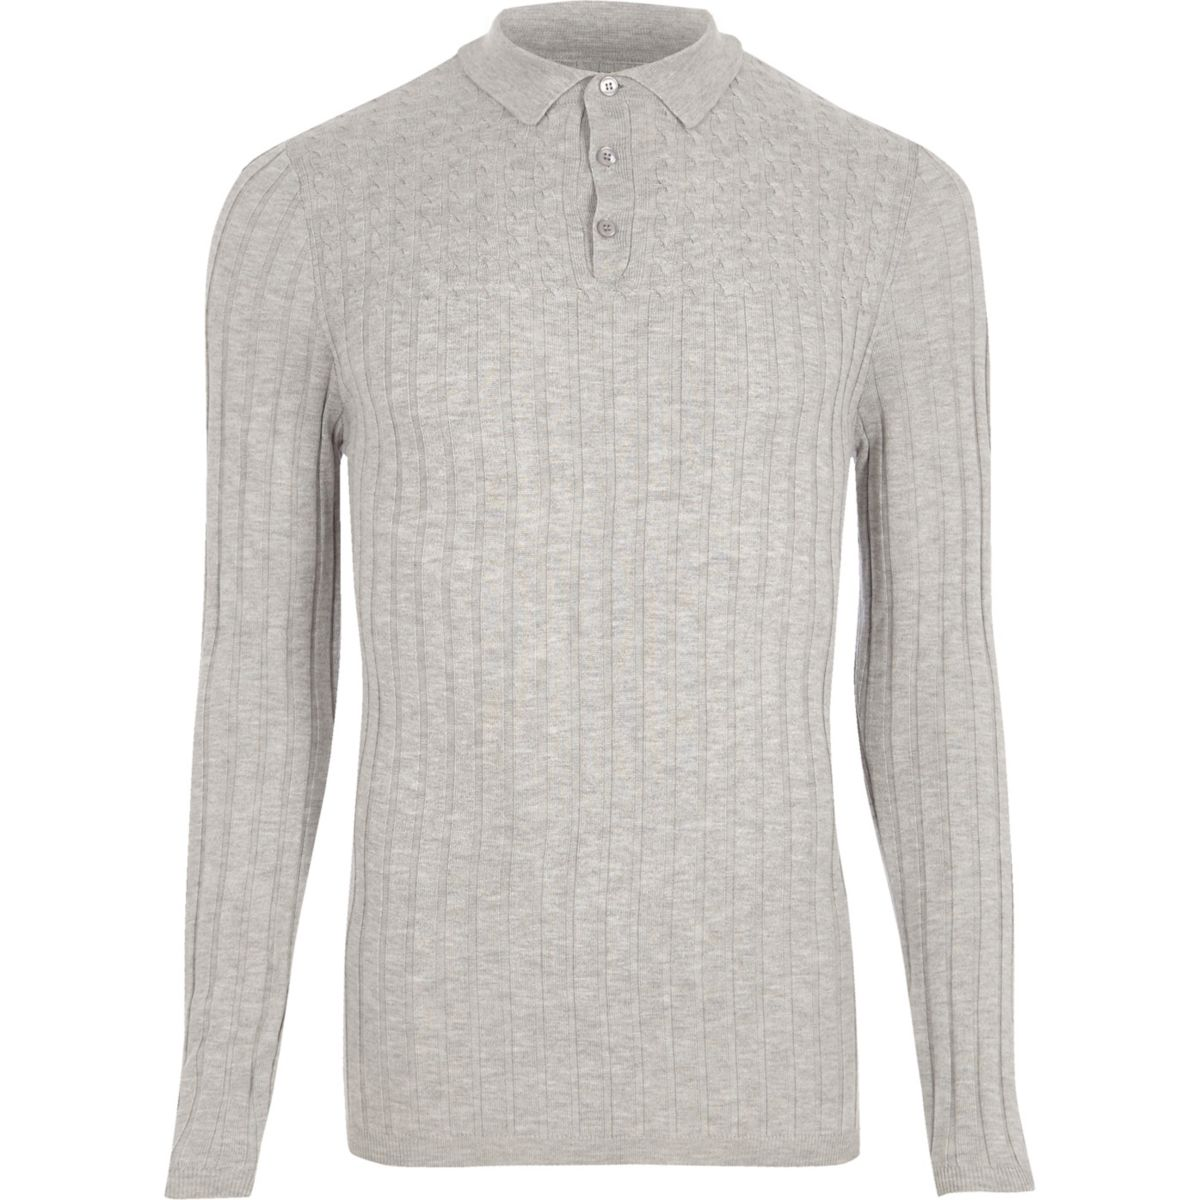 Grey ribbed cable knit long sleeve polo shirt